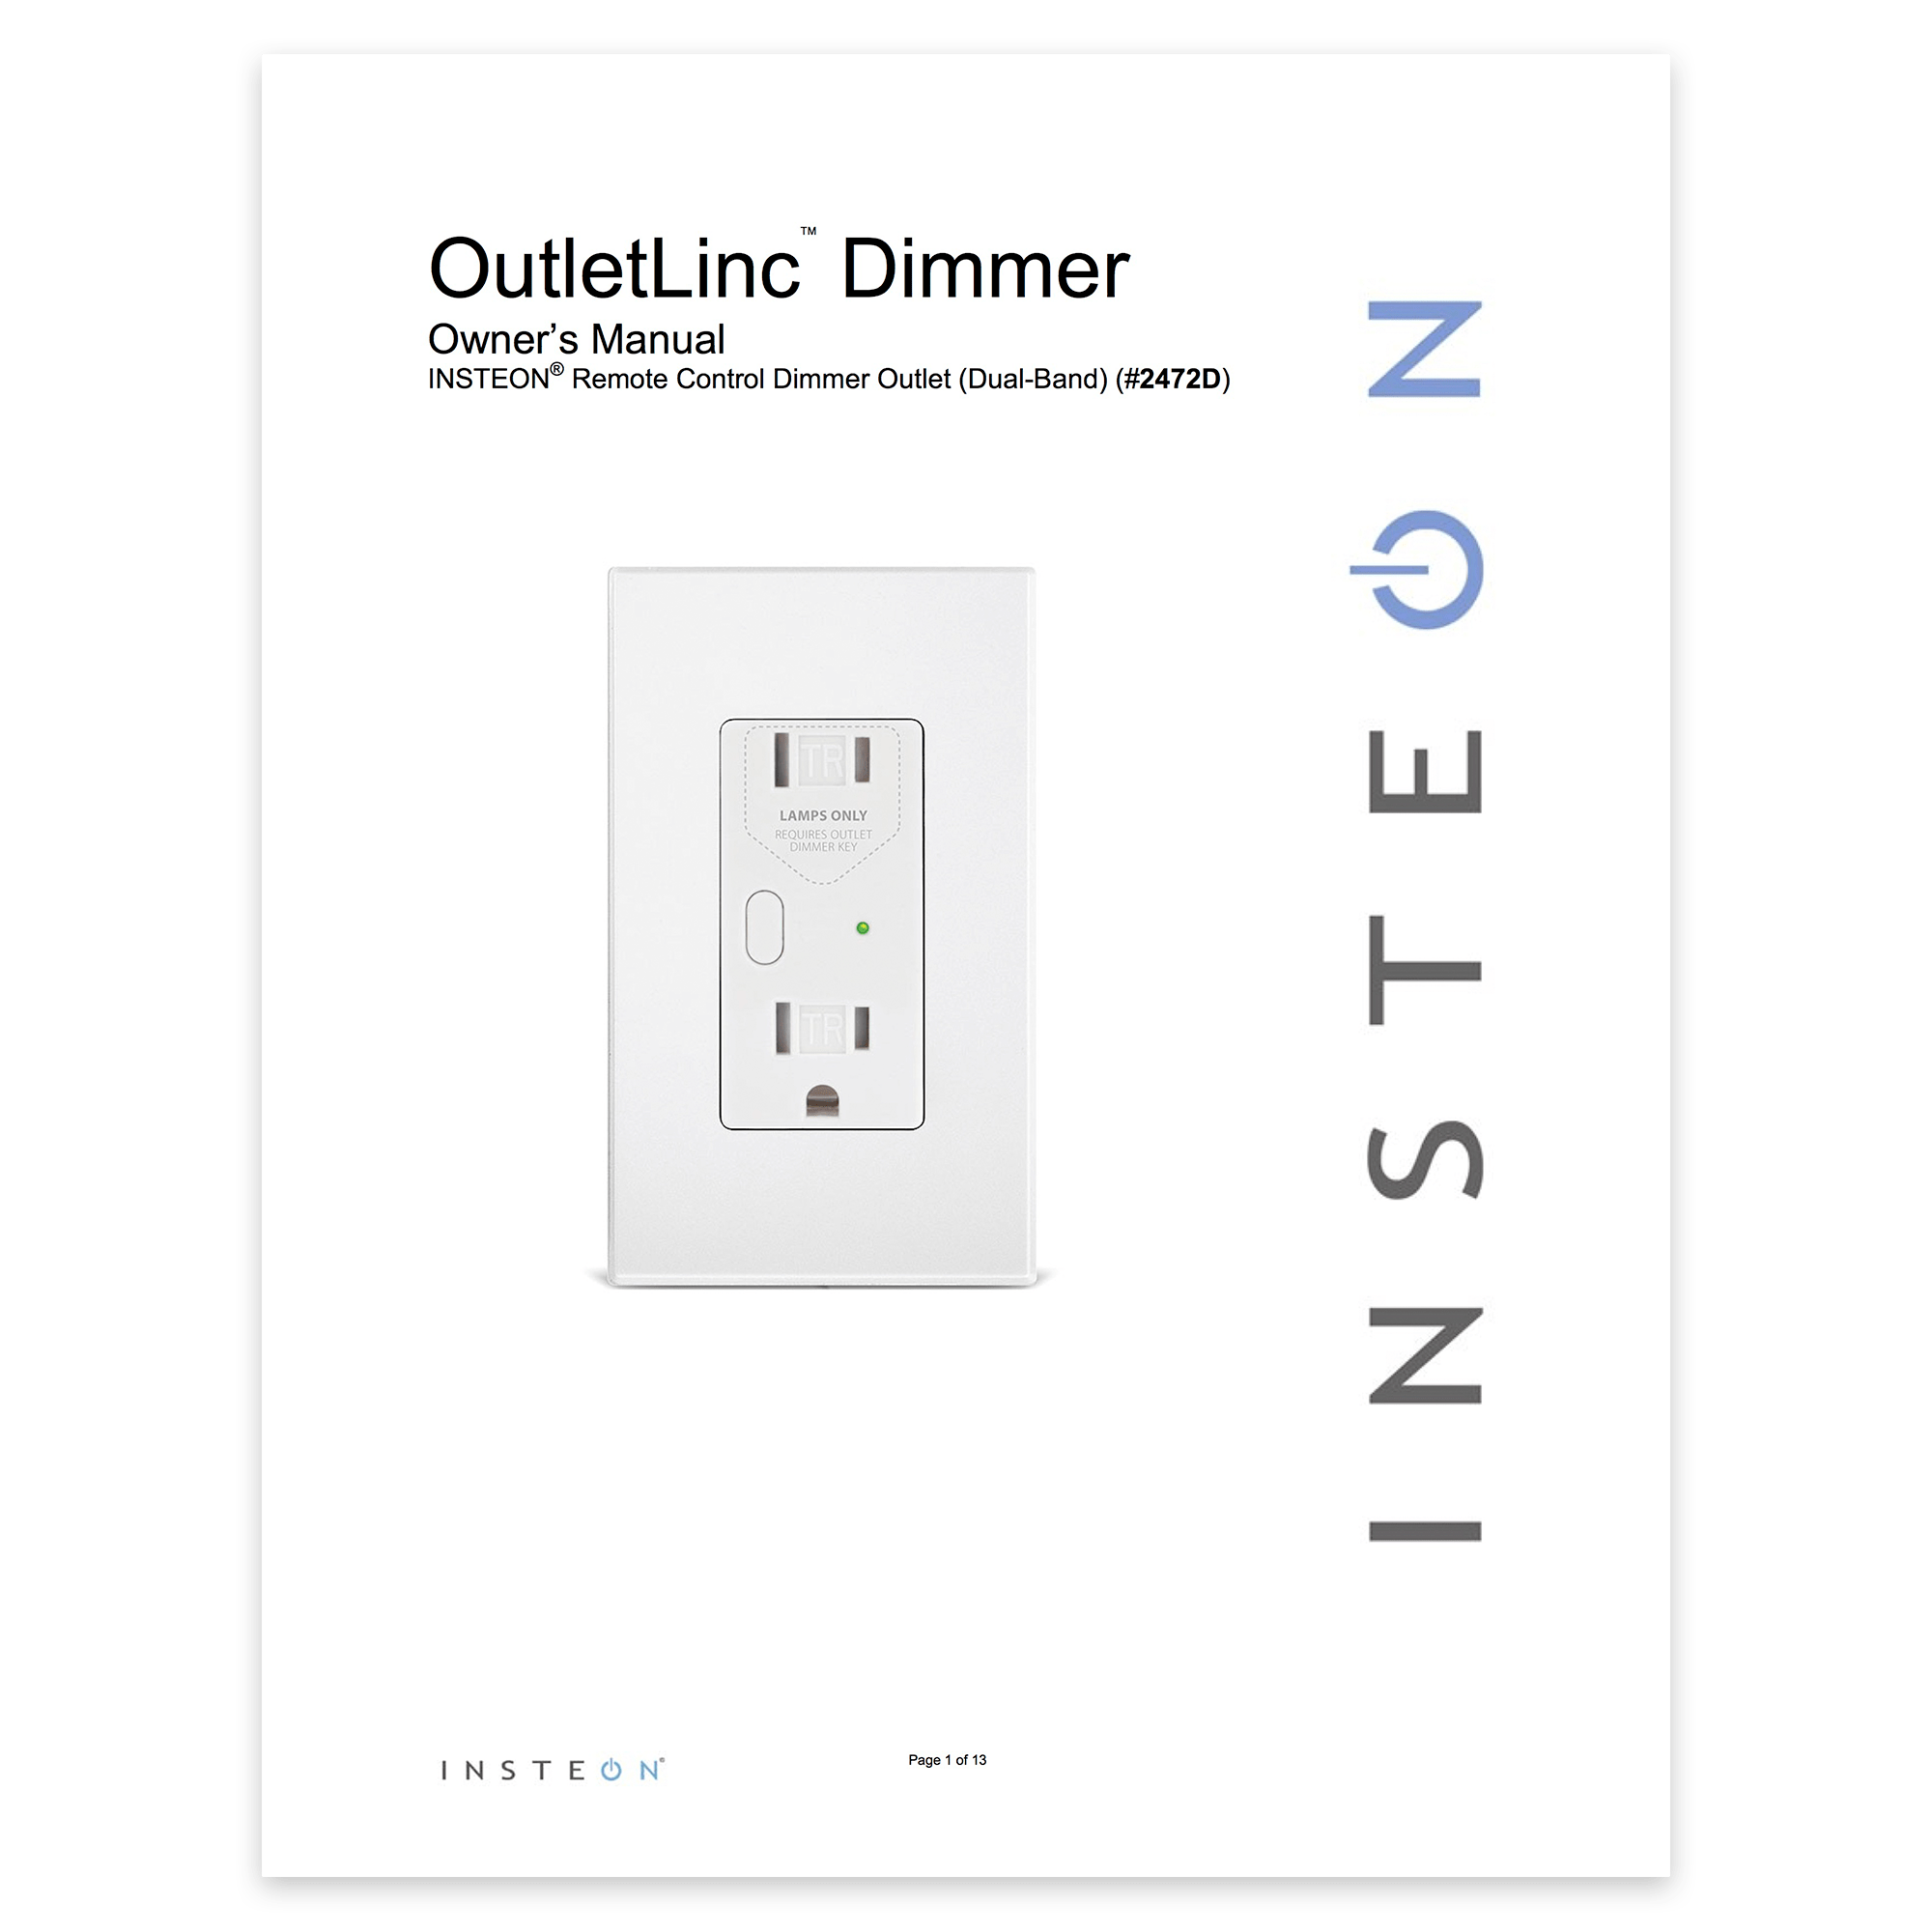 Dimmer Outlet Setup — Insteon